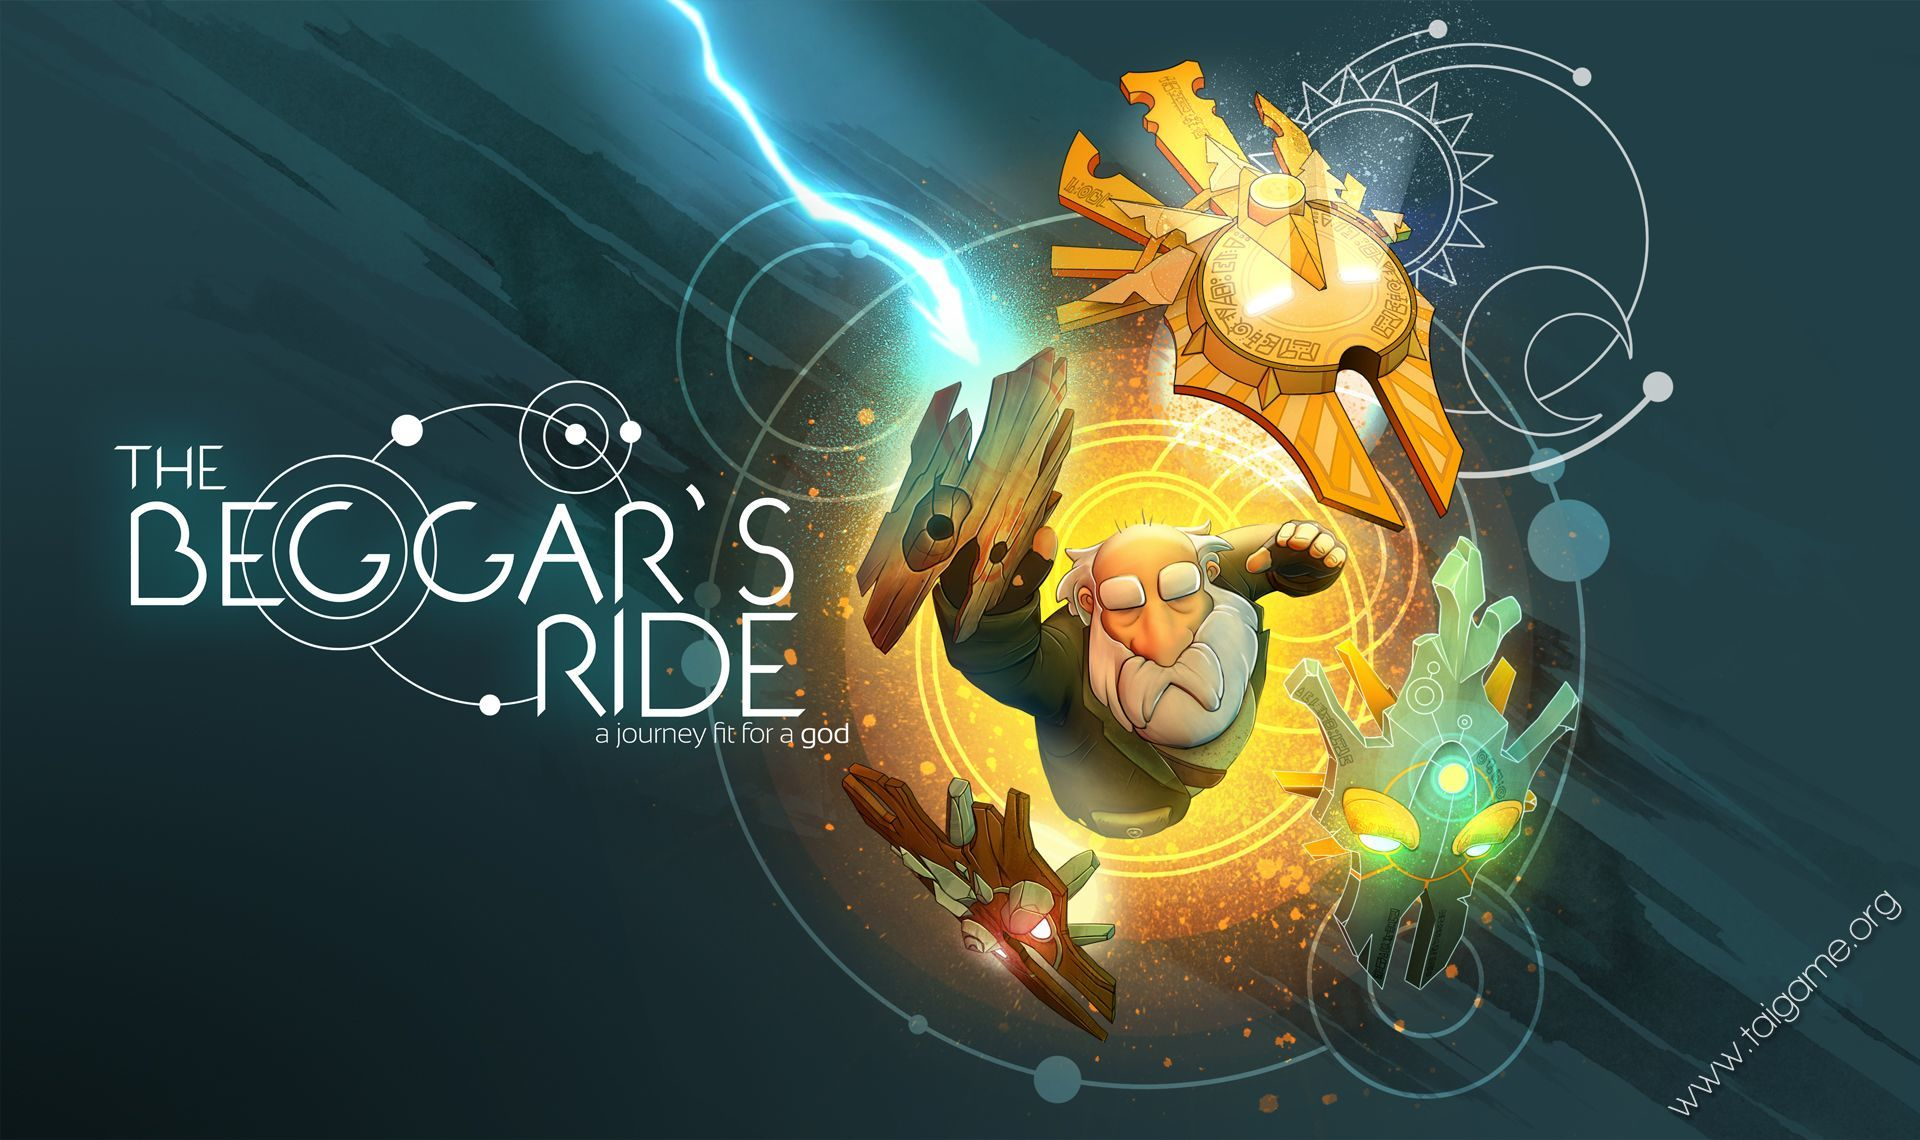 beggars ride pc download the